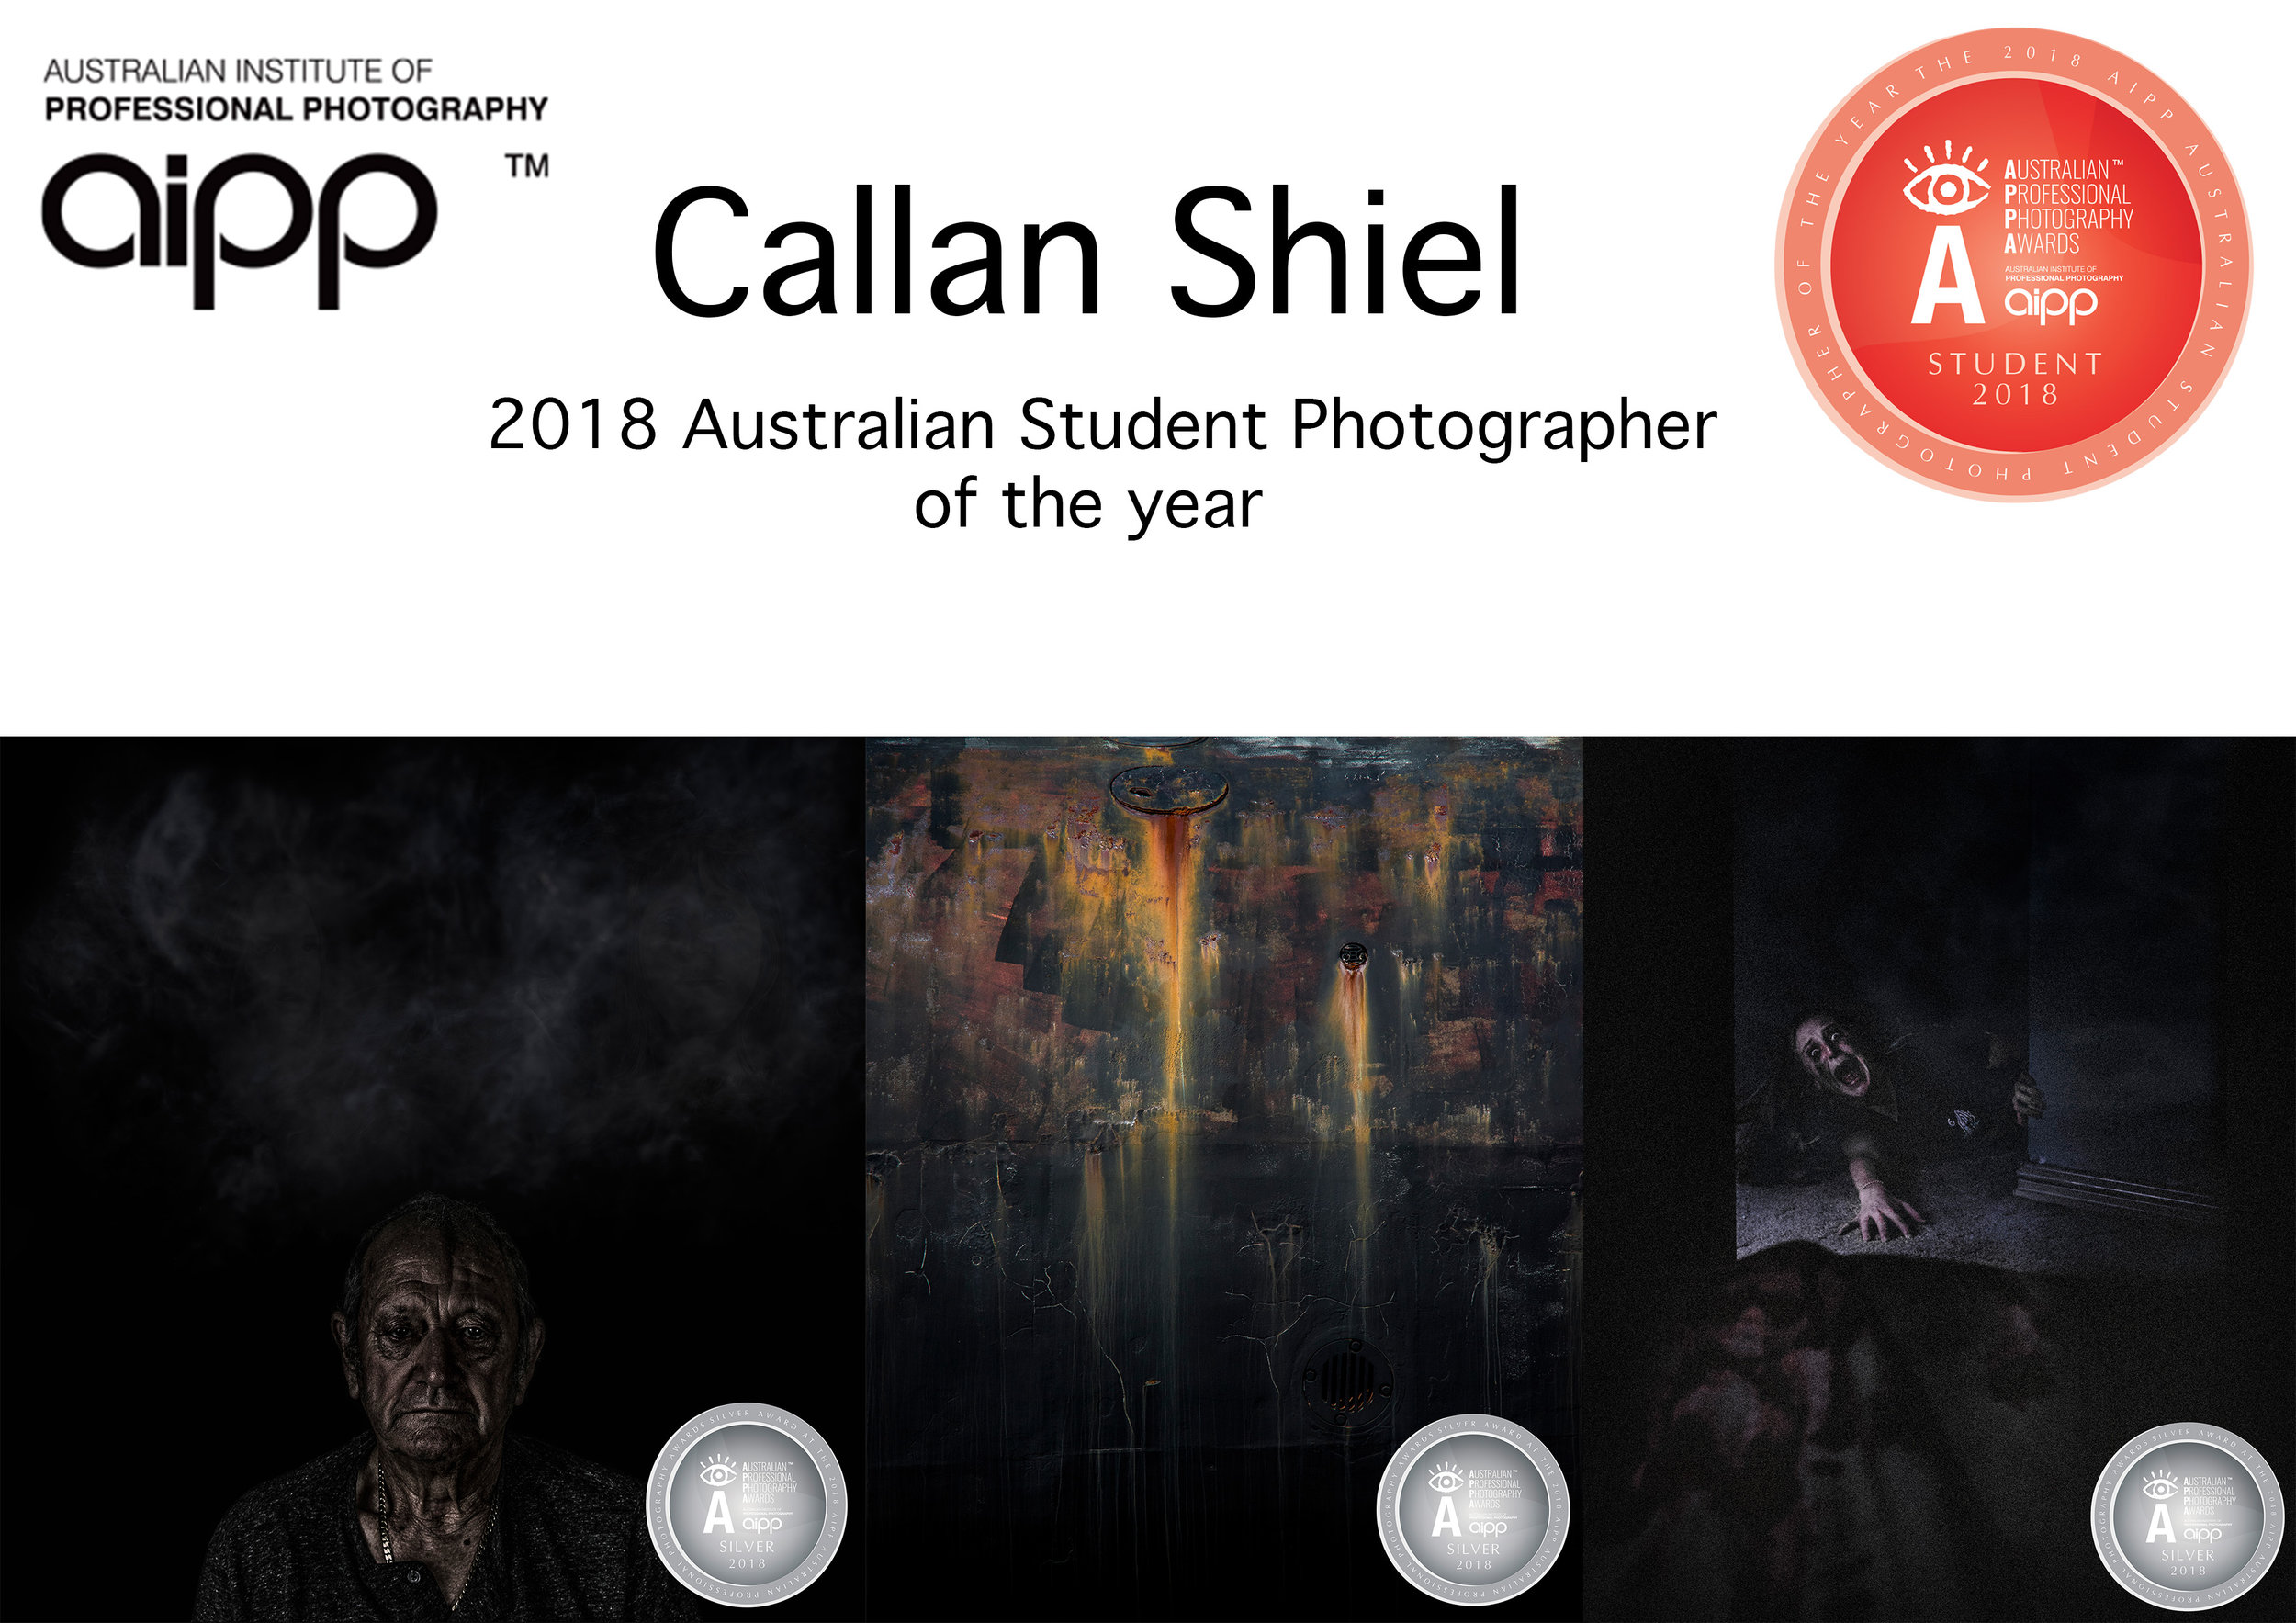 - In 2018 I was awarded the AIPP Australian Photographer of the year.